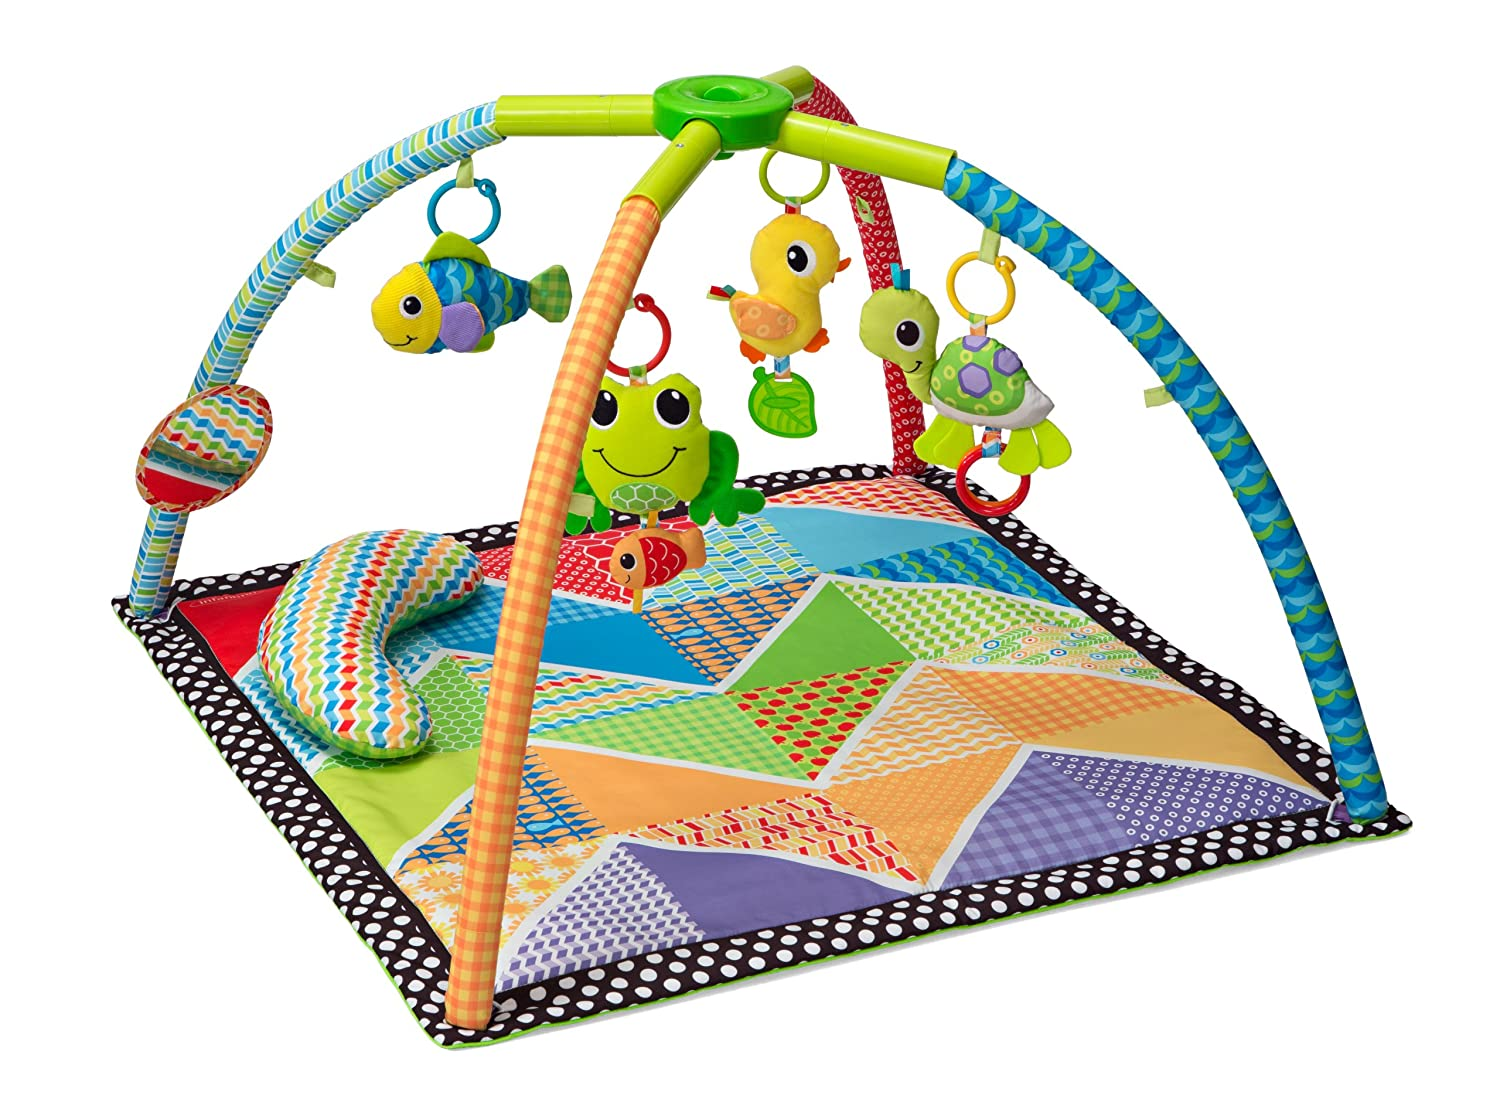 duncanstoychest buy index fisher floor toys price id quickview in view gyms activity baby musical playmats gym floors